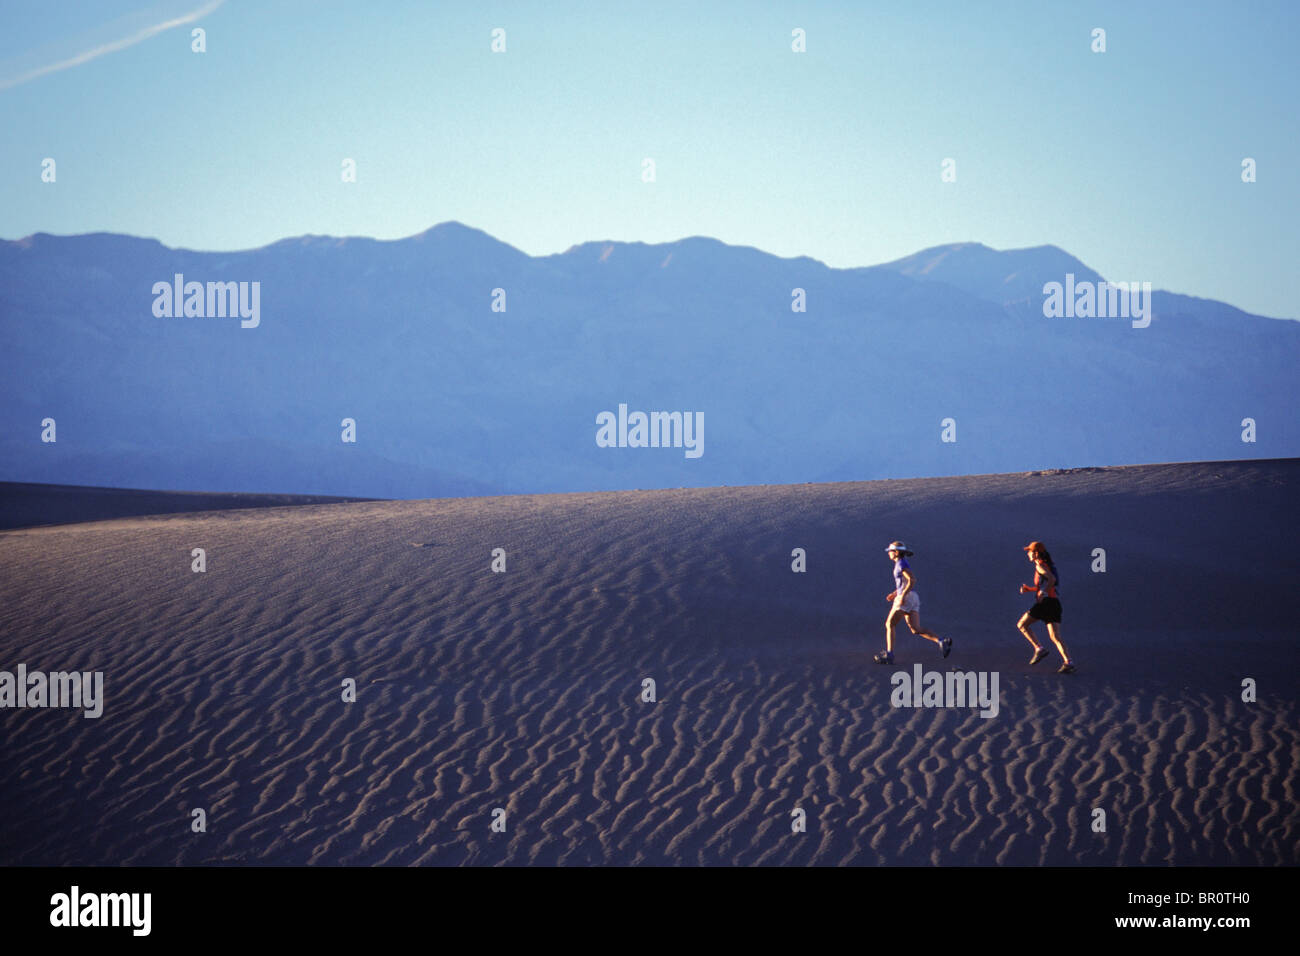 Two women running on a sand dune in Death Valley, California. - Stock Image